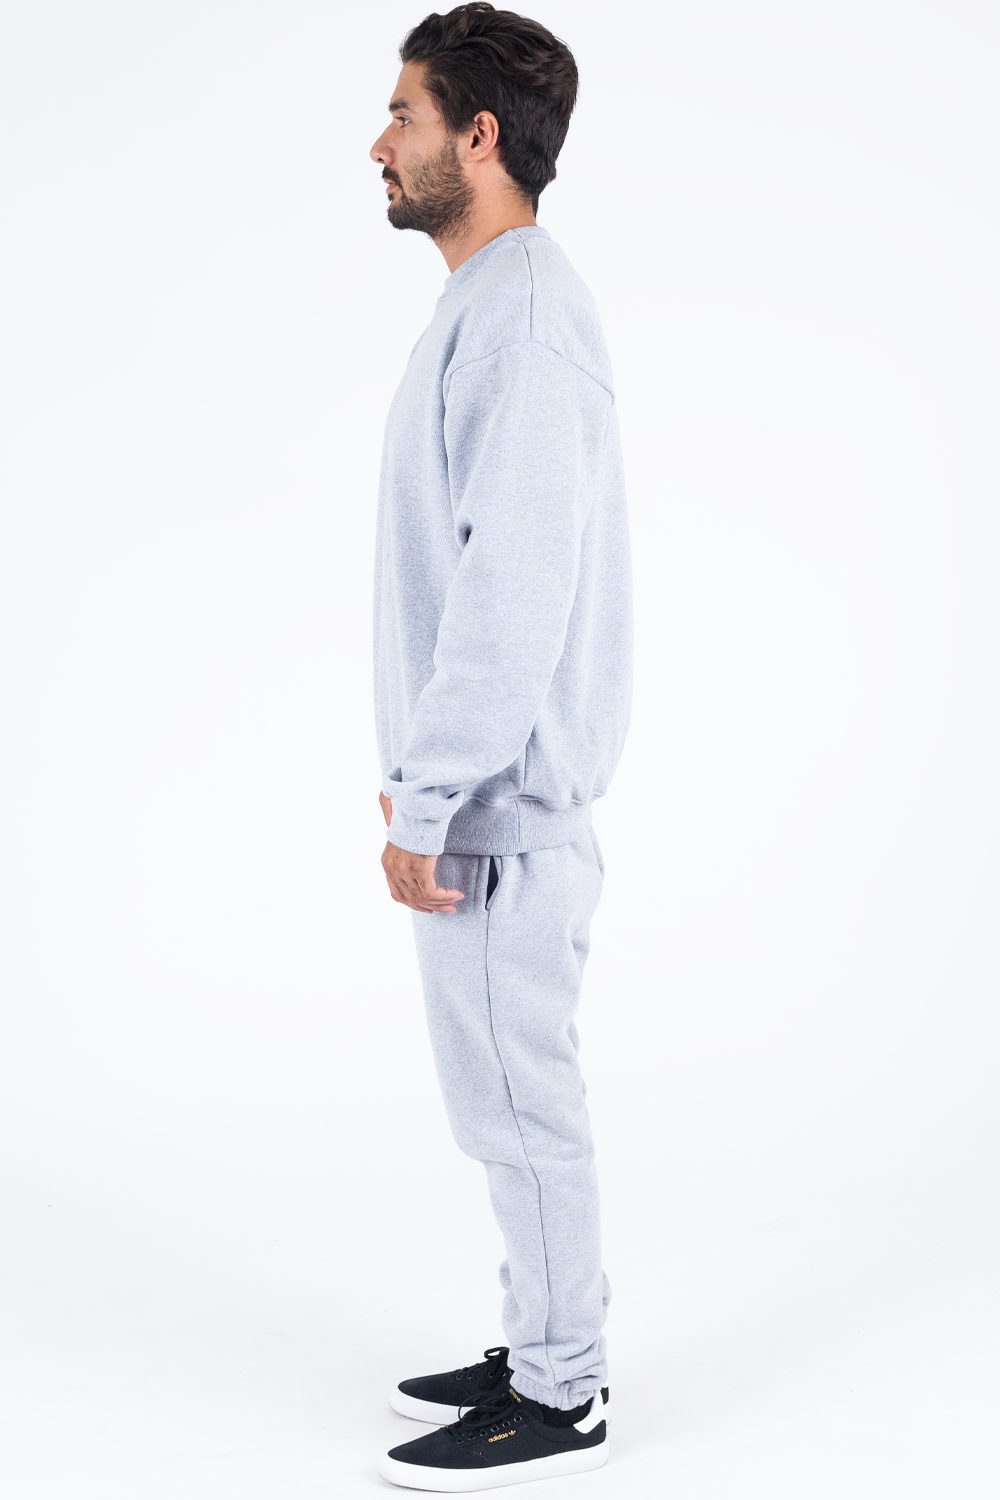 512_Heather Grey_Max3.png